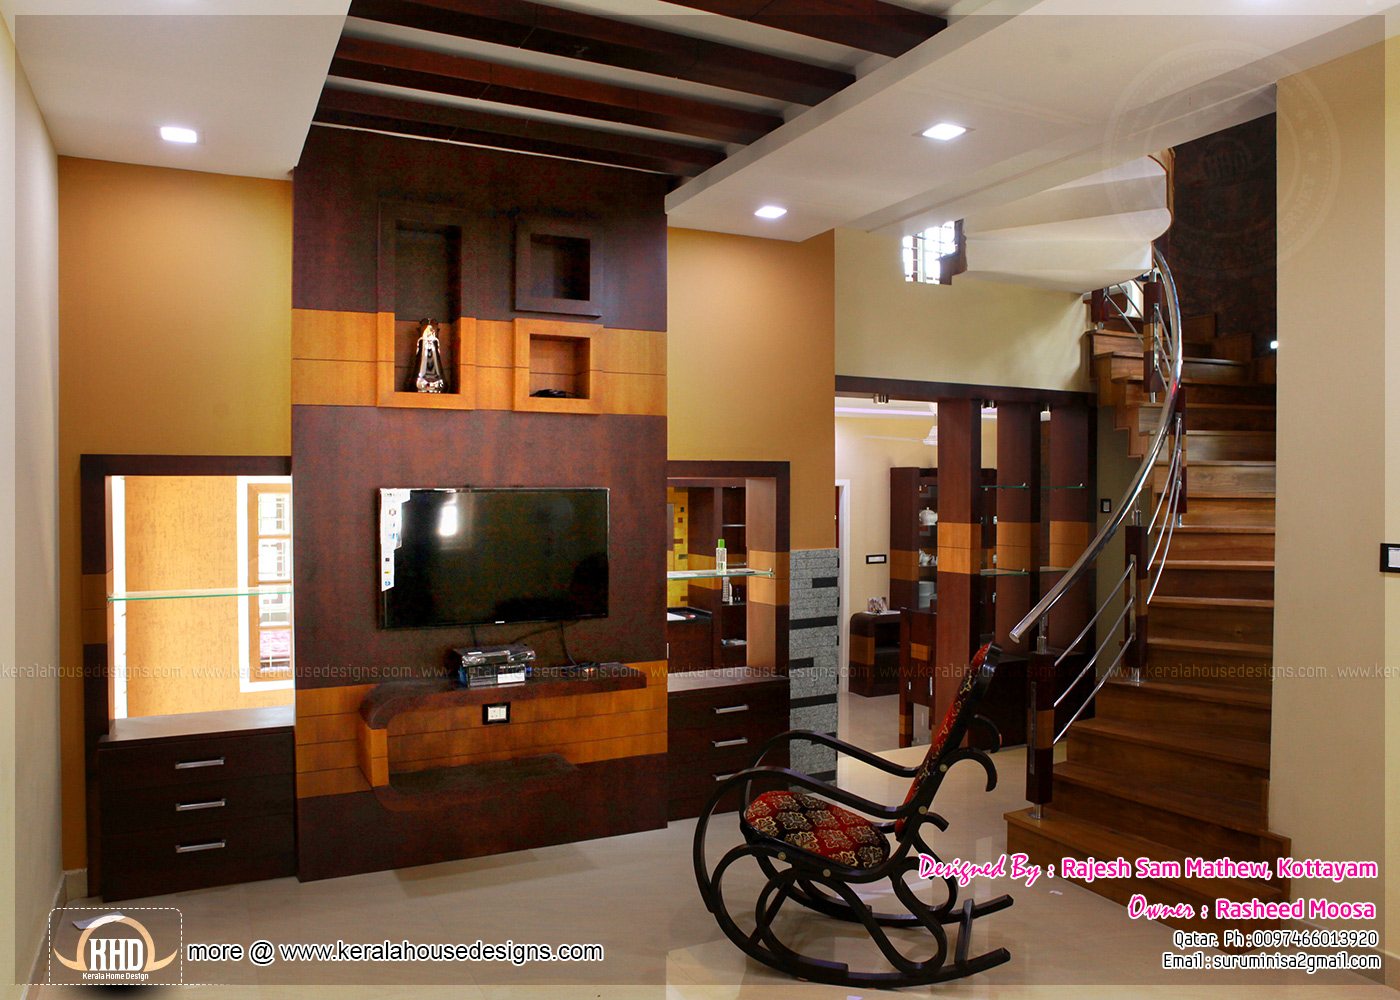 Home Interior Design Ideas Kerala: Kerala Interior Design With Photos